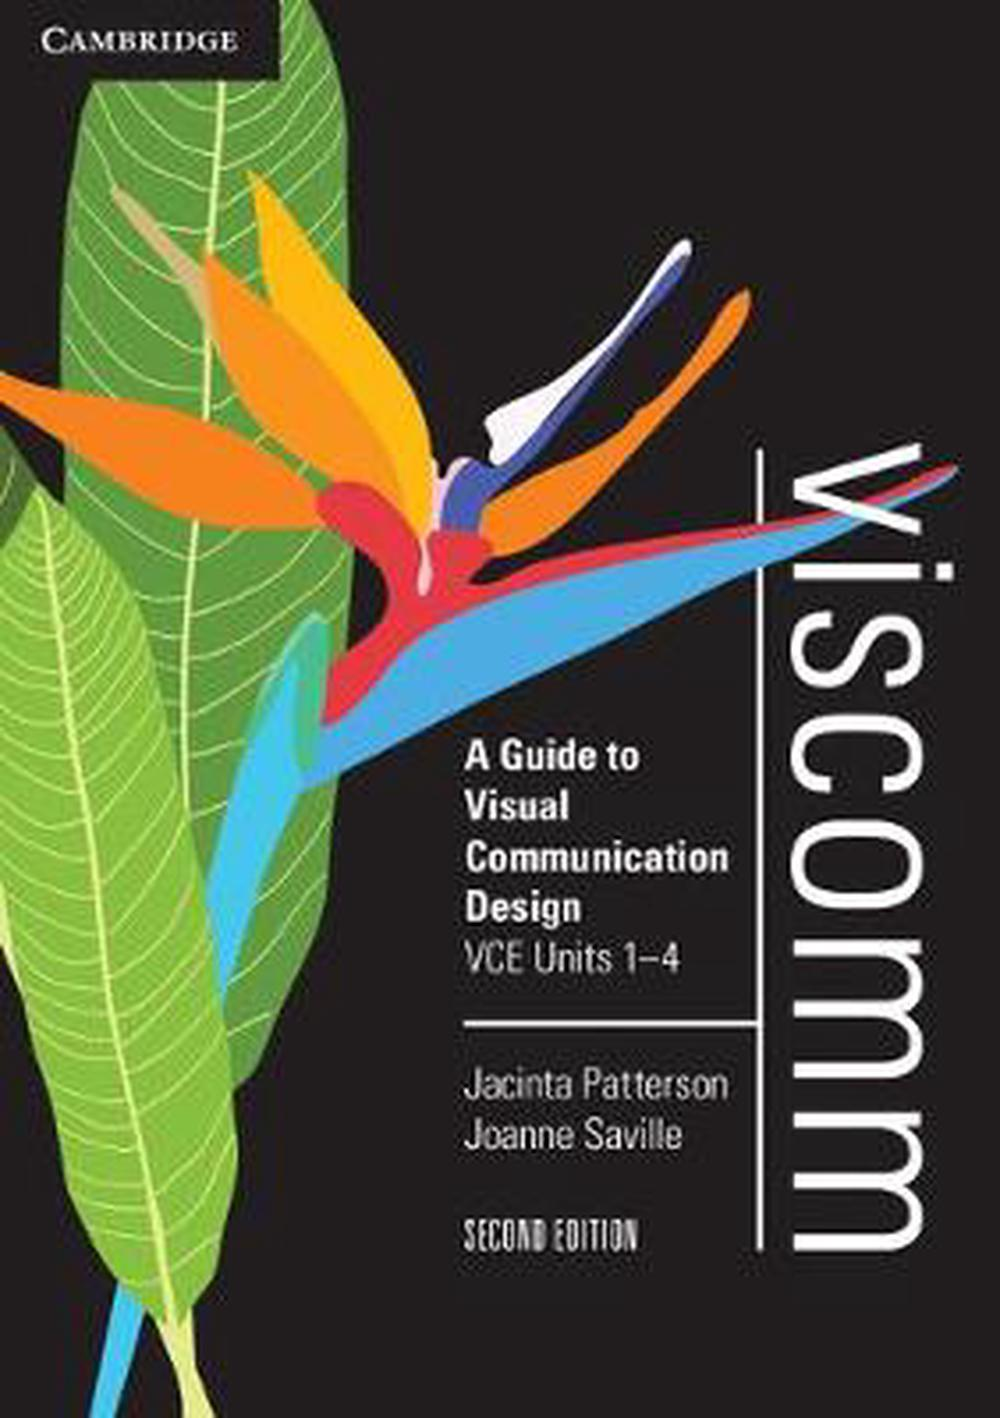 Viscomm 2ed Pack (Textbook and Interactive Textbook): A Guide to Visual Communication Design by Jacinta Patterson, ISBN: 9781316621981